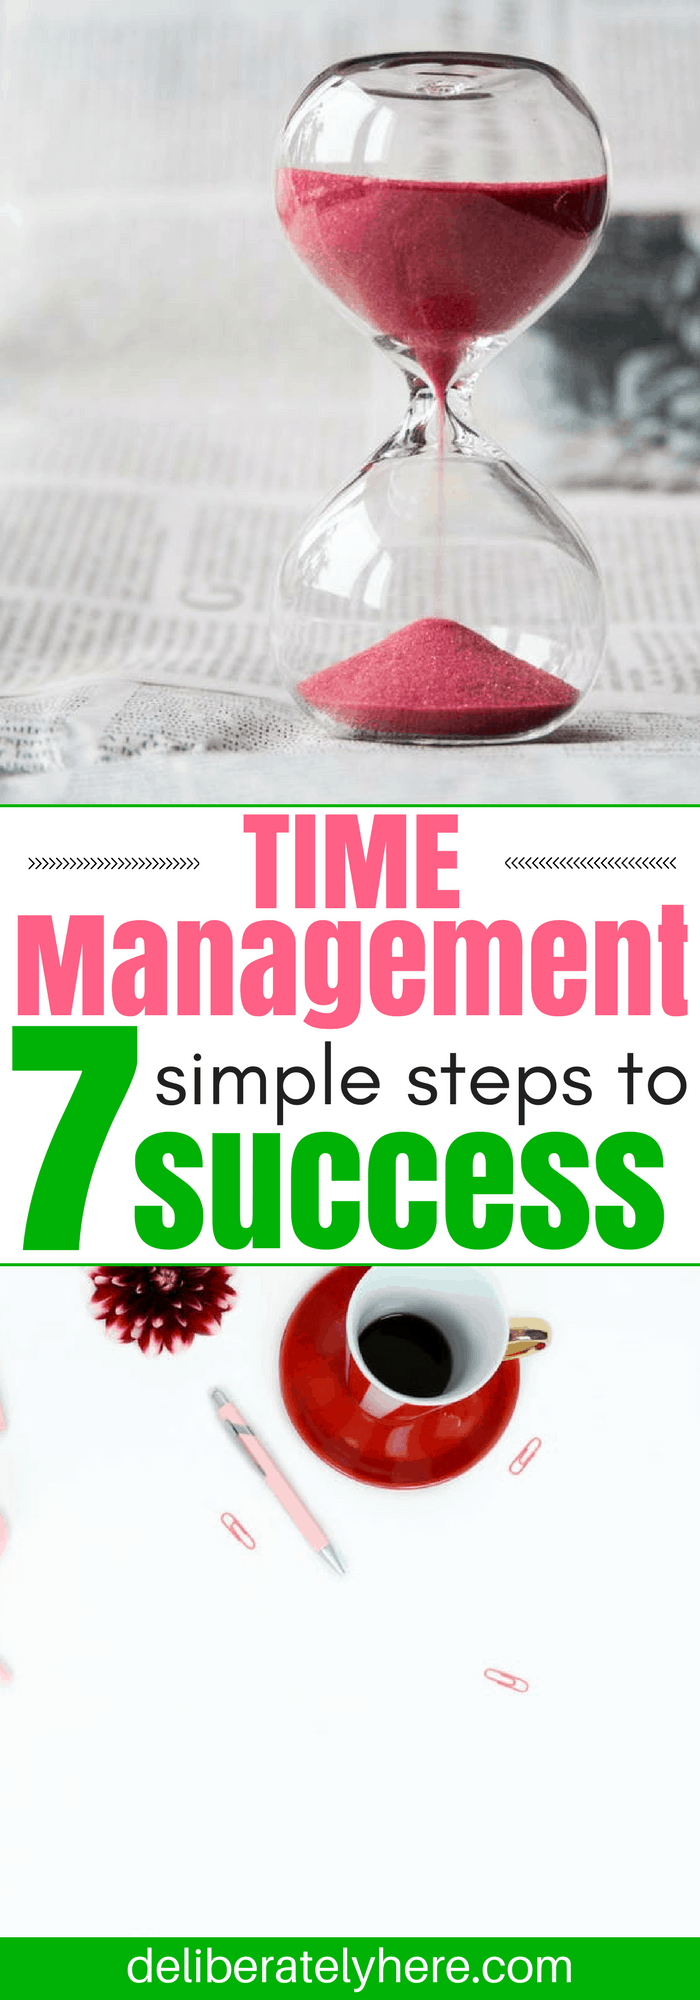 Time Management 7 Simple Steps to Success